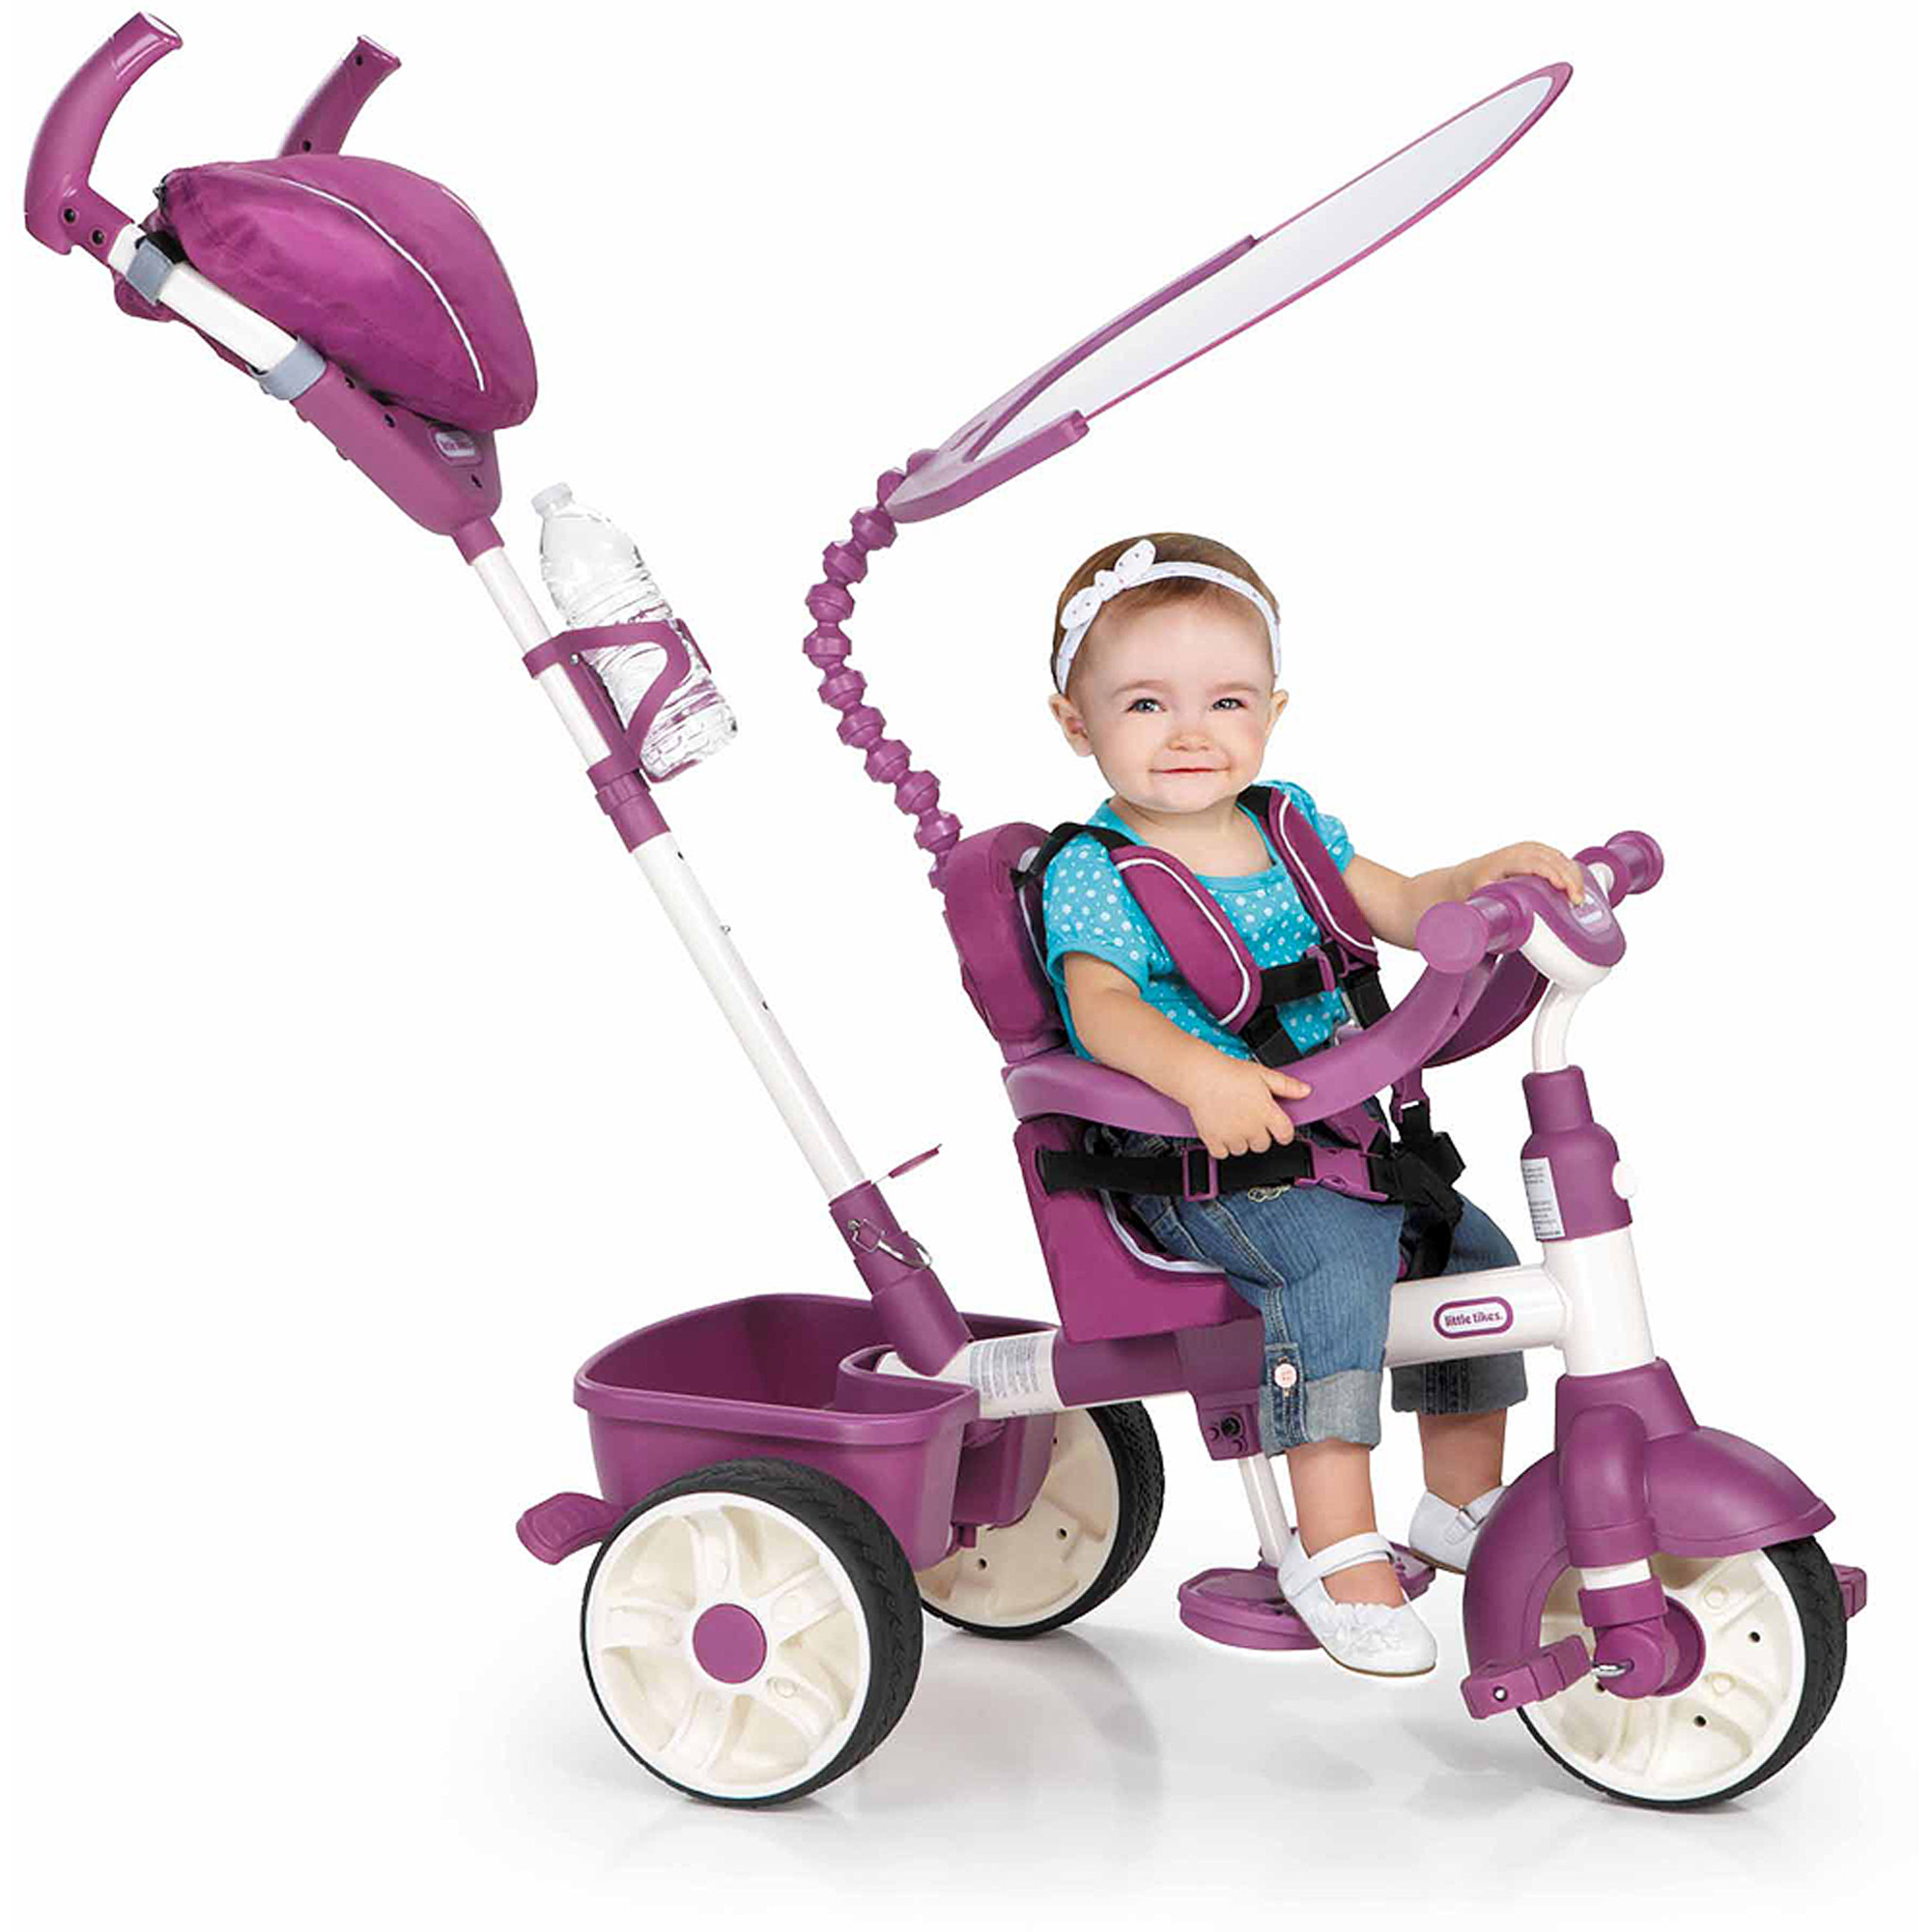 Little Tikes 4-in-1 Sports Edition Trike, Pink White by MGA Entertainment